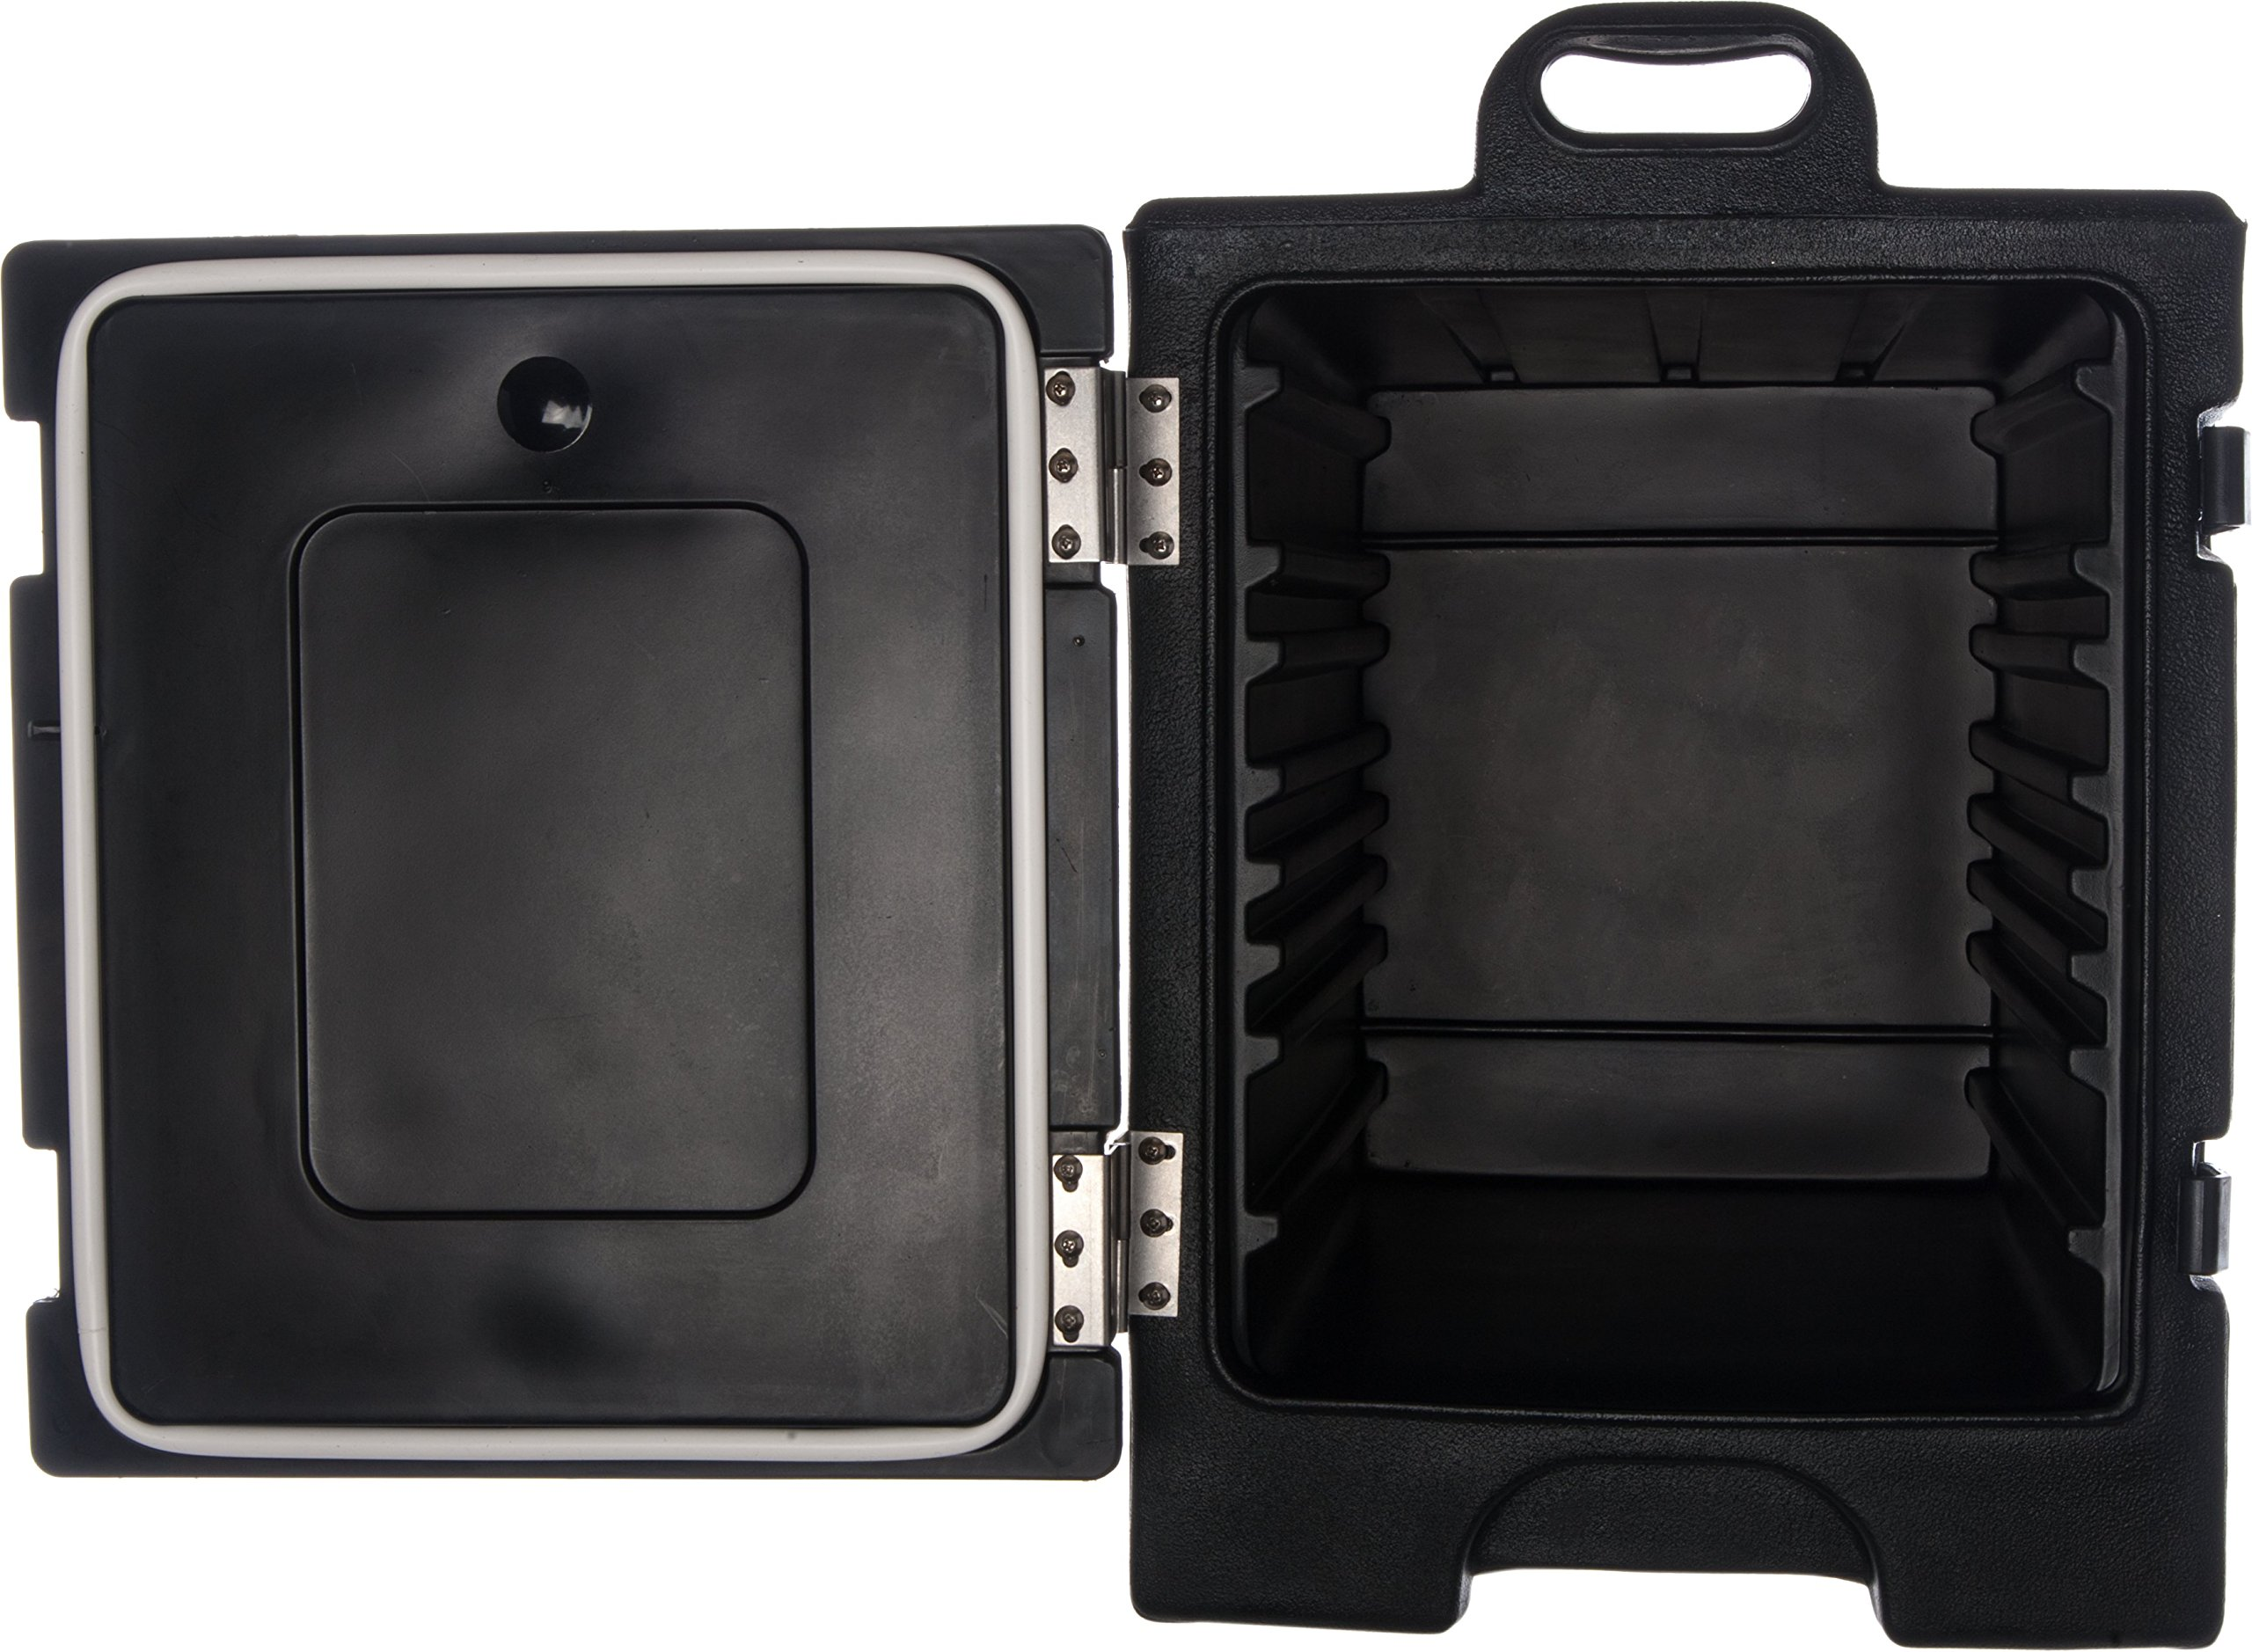 Carlisle PC300N03 Cateraide End-Loading Insulated Food Pan Carrier, 5 Pan Capacity, Black by Carlisle (Image #4)